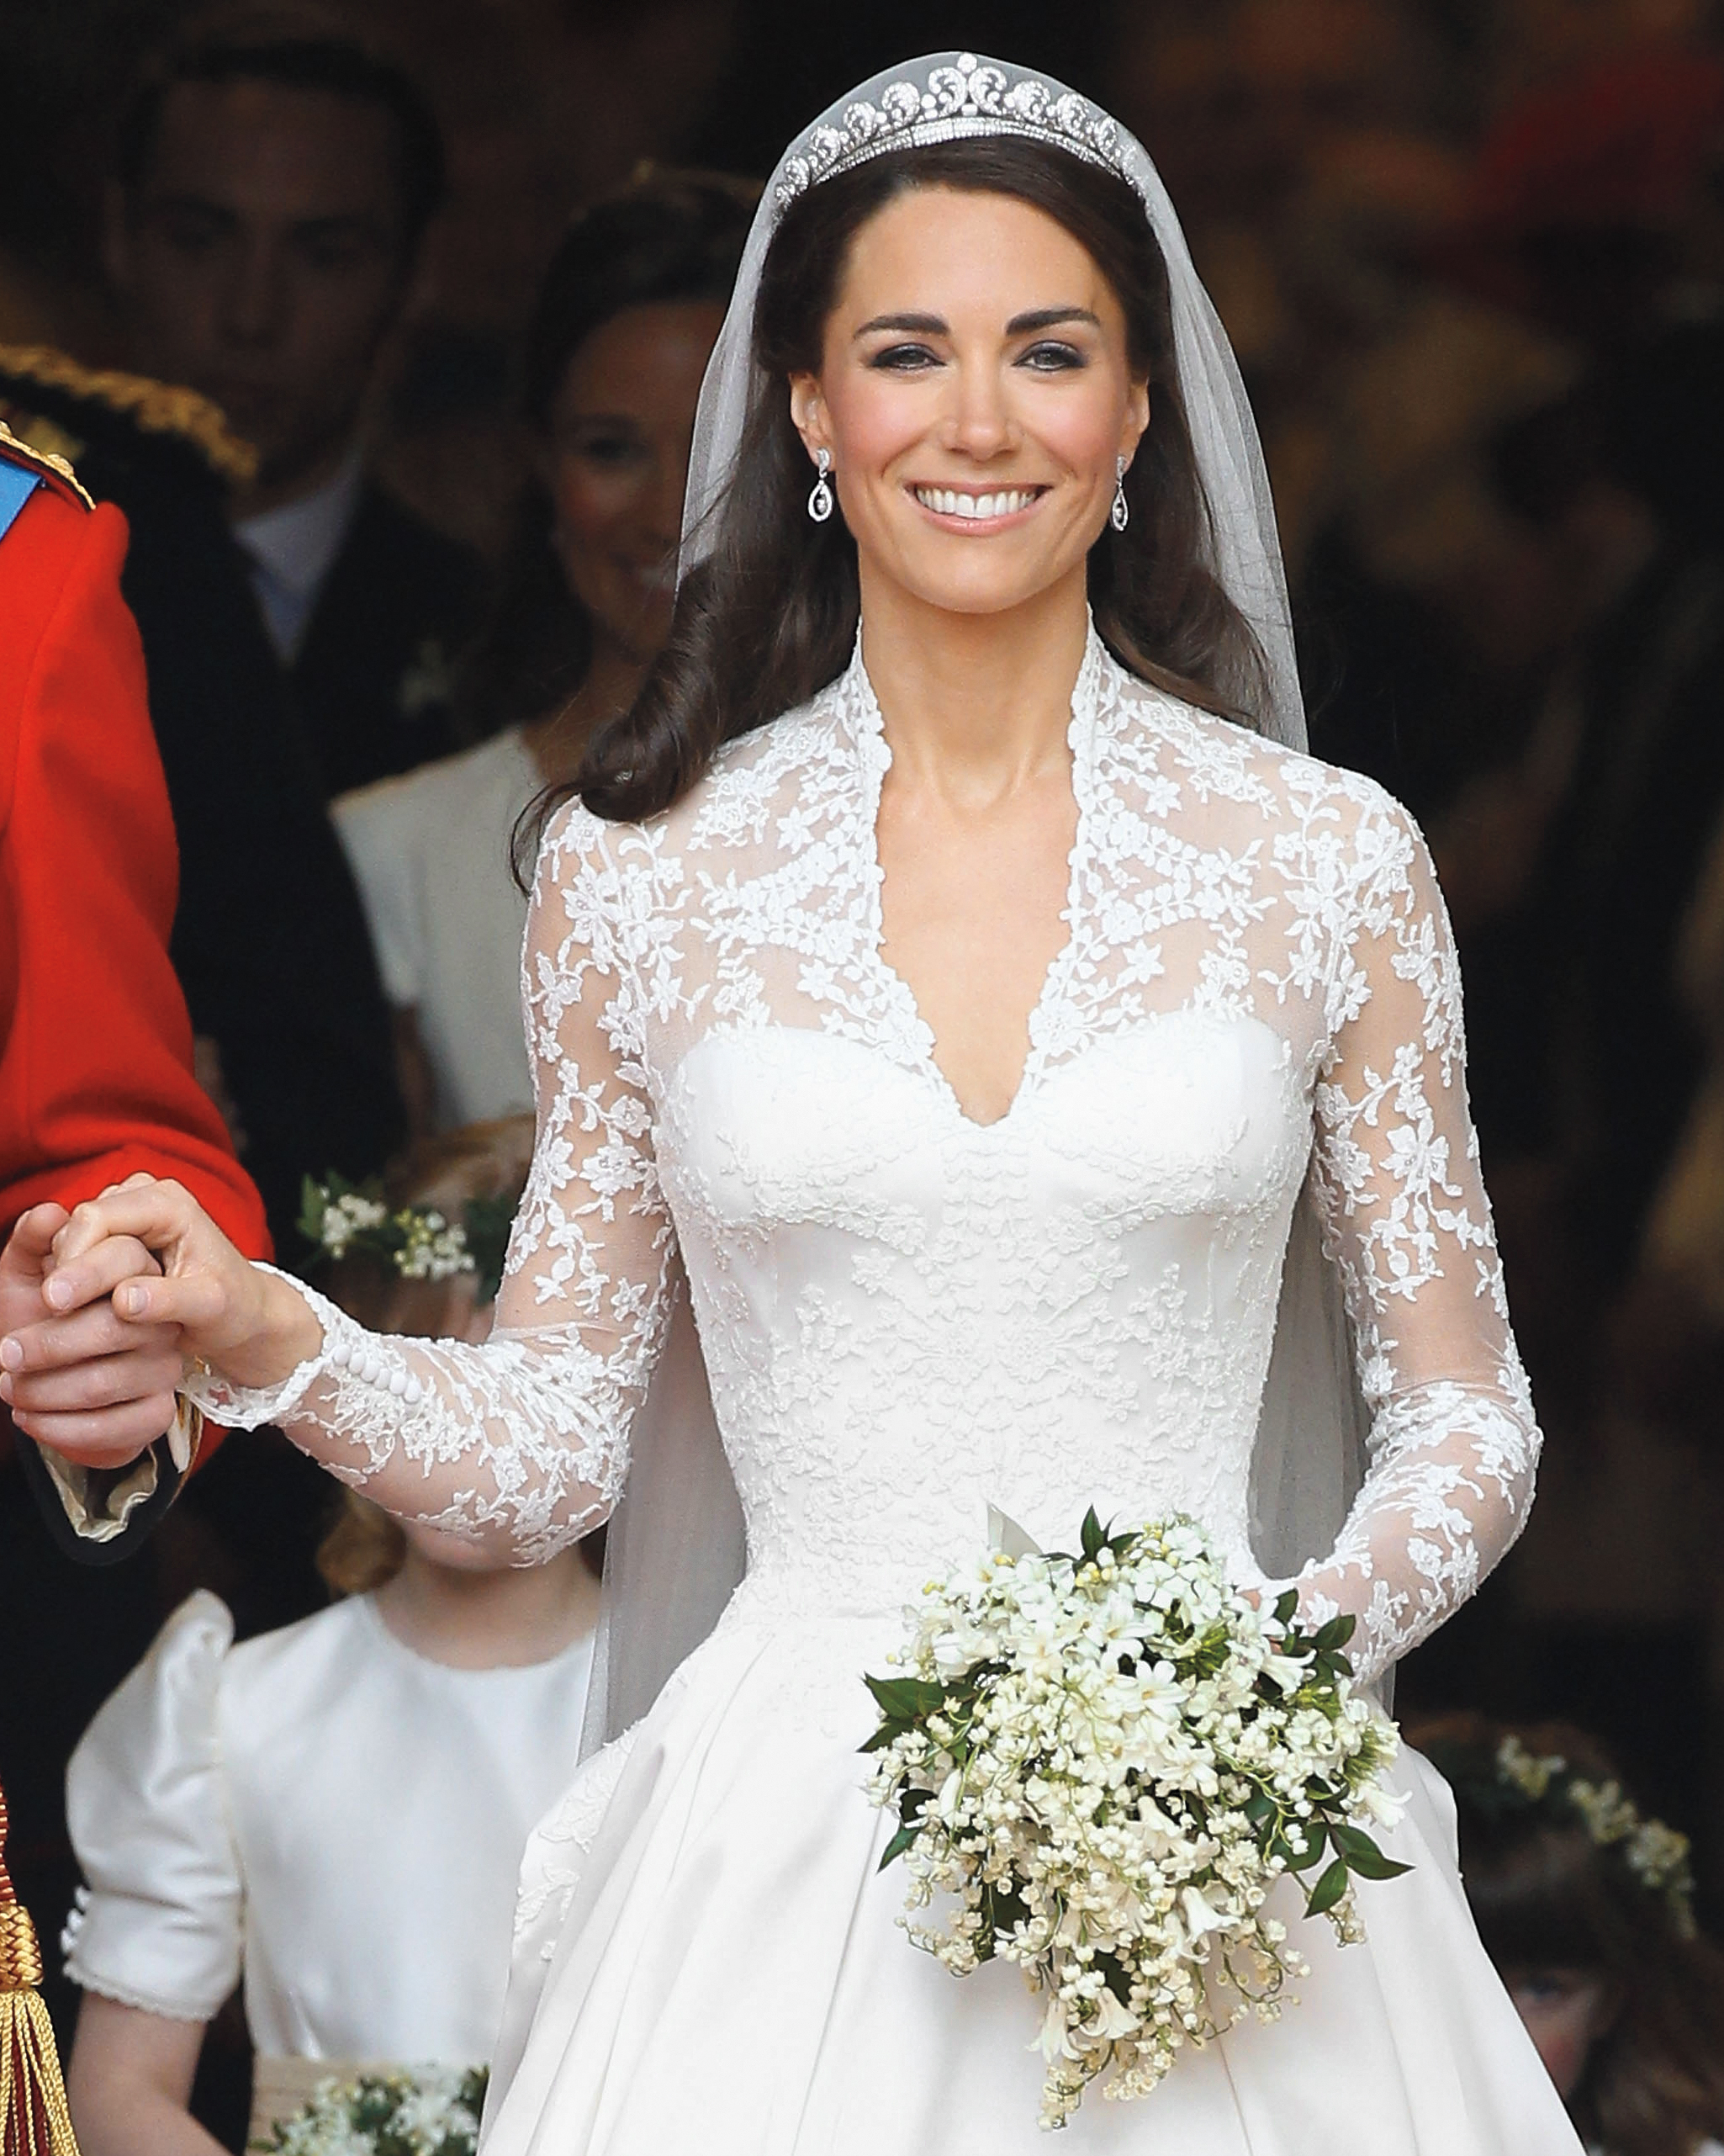 #24 Kate Middleton's 35th Birthday